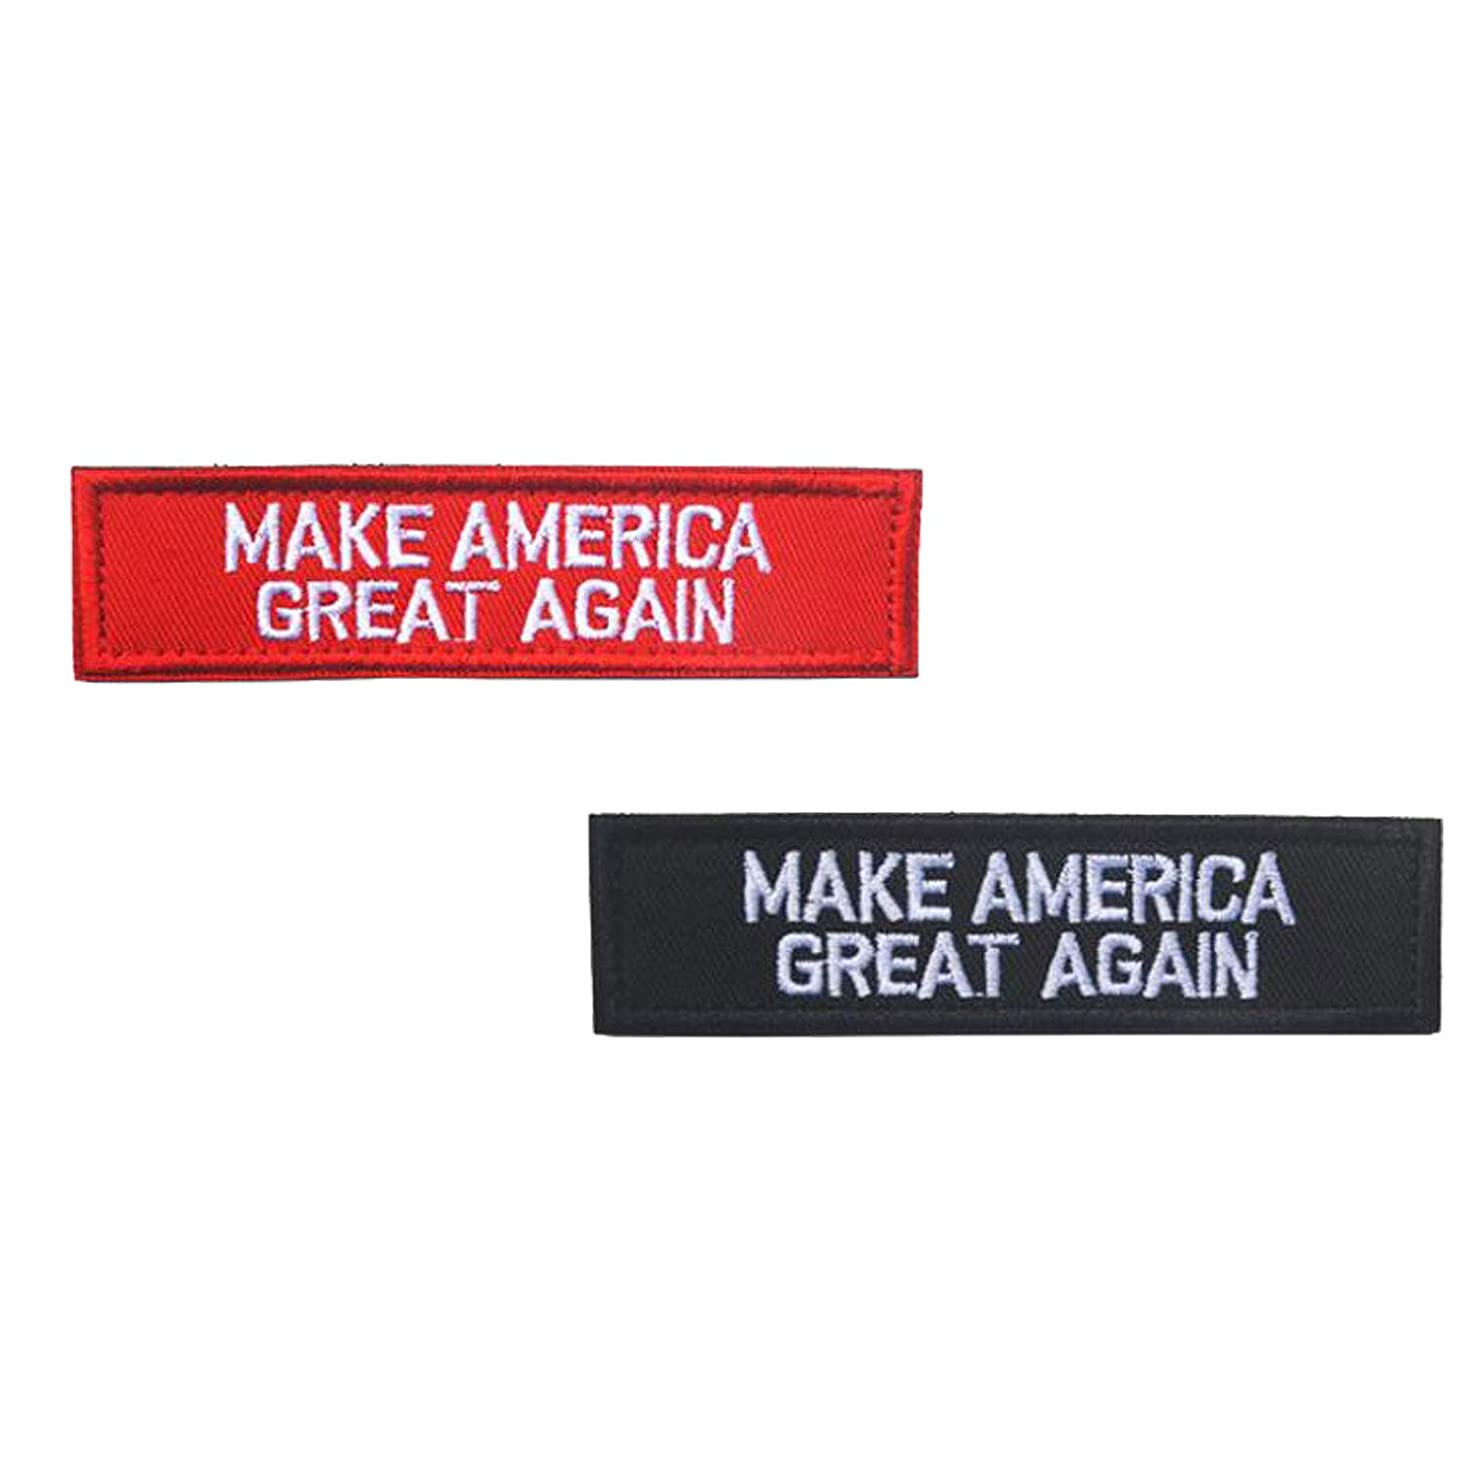 2PCS Make America Great Again Deplorable Donald Trump Emblem Embroidered Badge Fastener Hook & Loop Patch Sew-on Patches DIY Appliques.